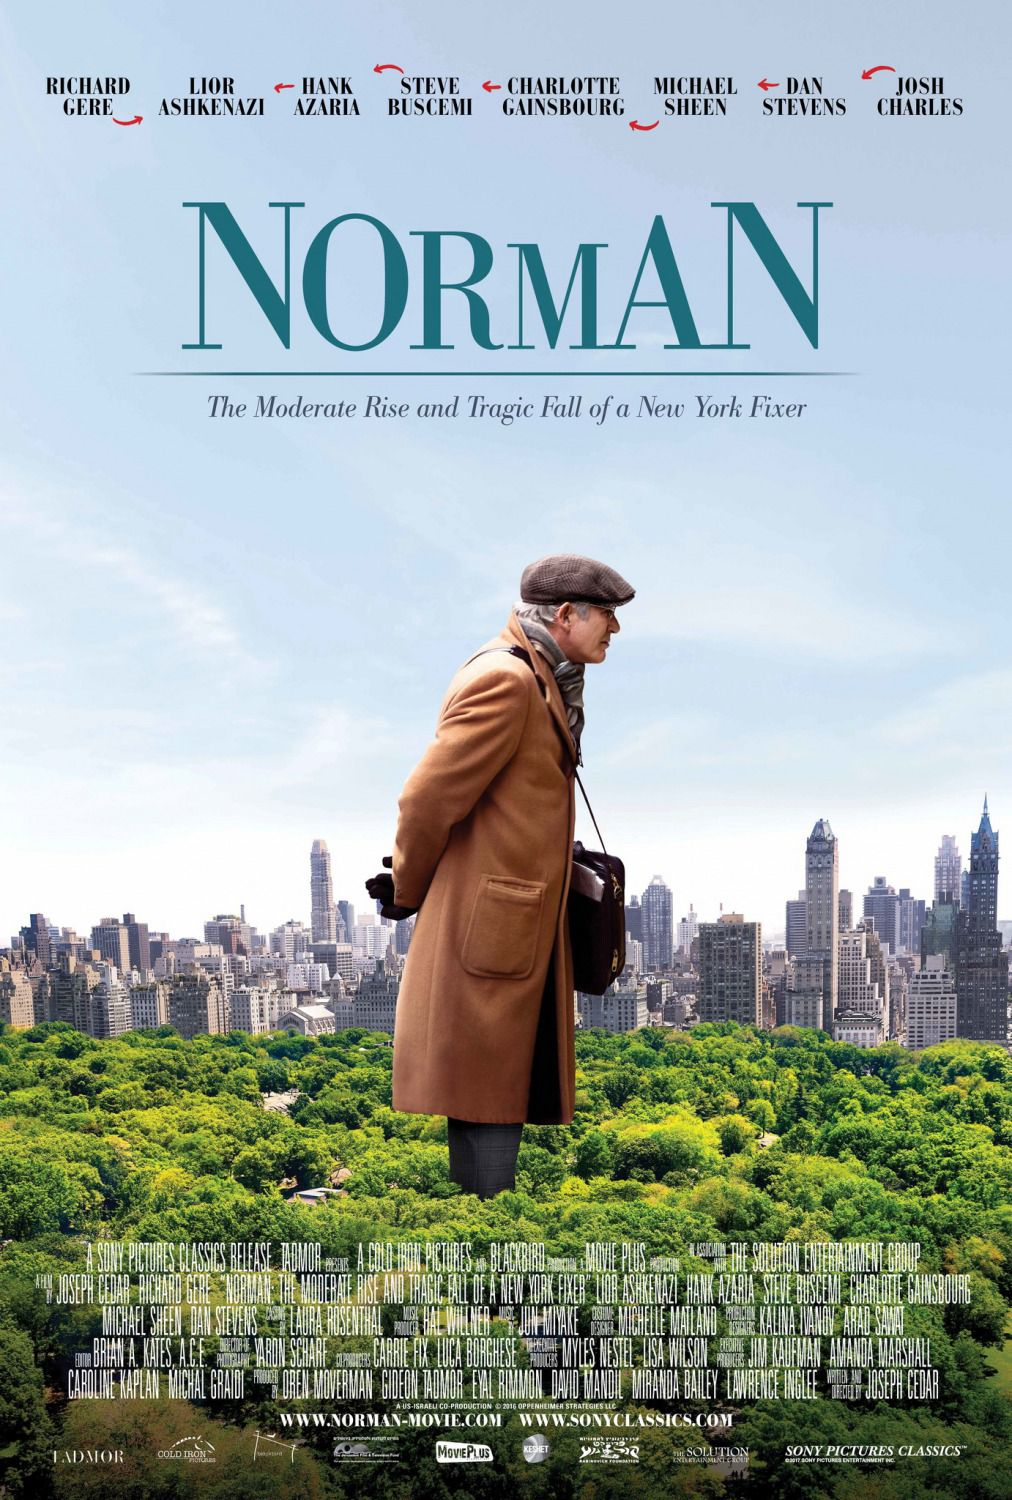 Norman - L'incredibile vita di Norman - the moderate rise and tragic fall of a New York fixer - Lior Ashkenazi - Richard Gere - Michael Sheen - Dan Stevens - film poster 2017